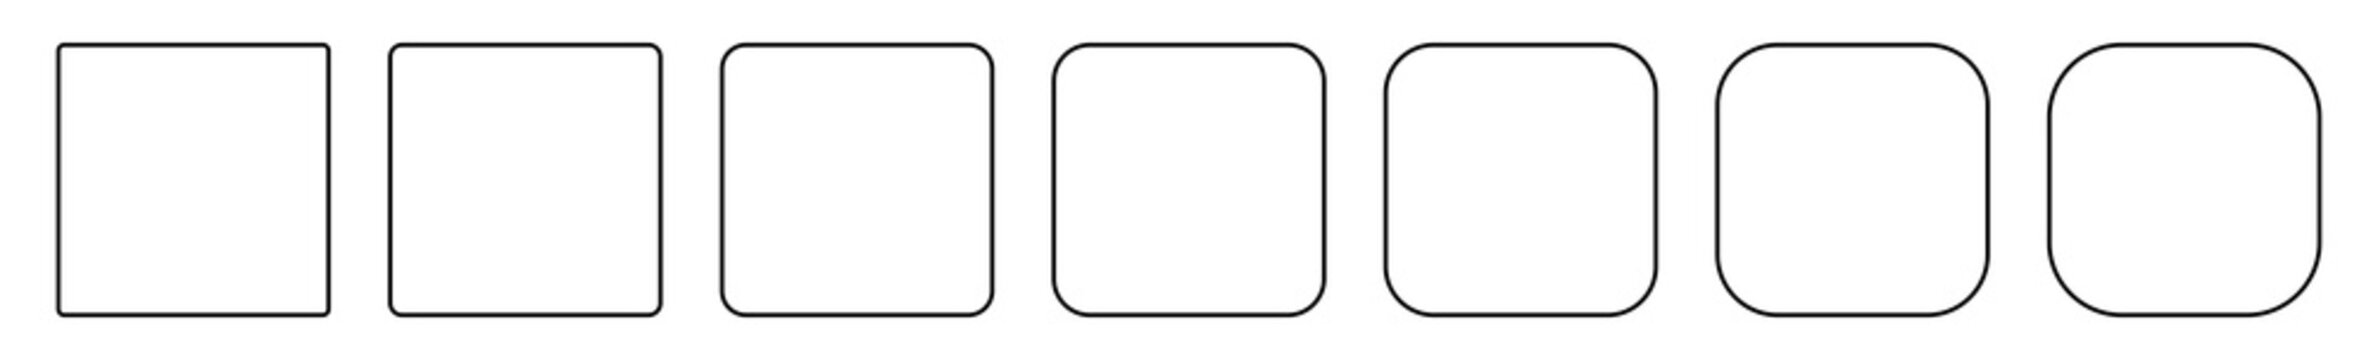 Square Icon Thin Line Black   Round Squares   Foursquare Symbol   Frame Logo   Button Sign   Isolated   Variations